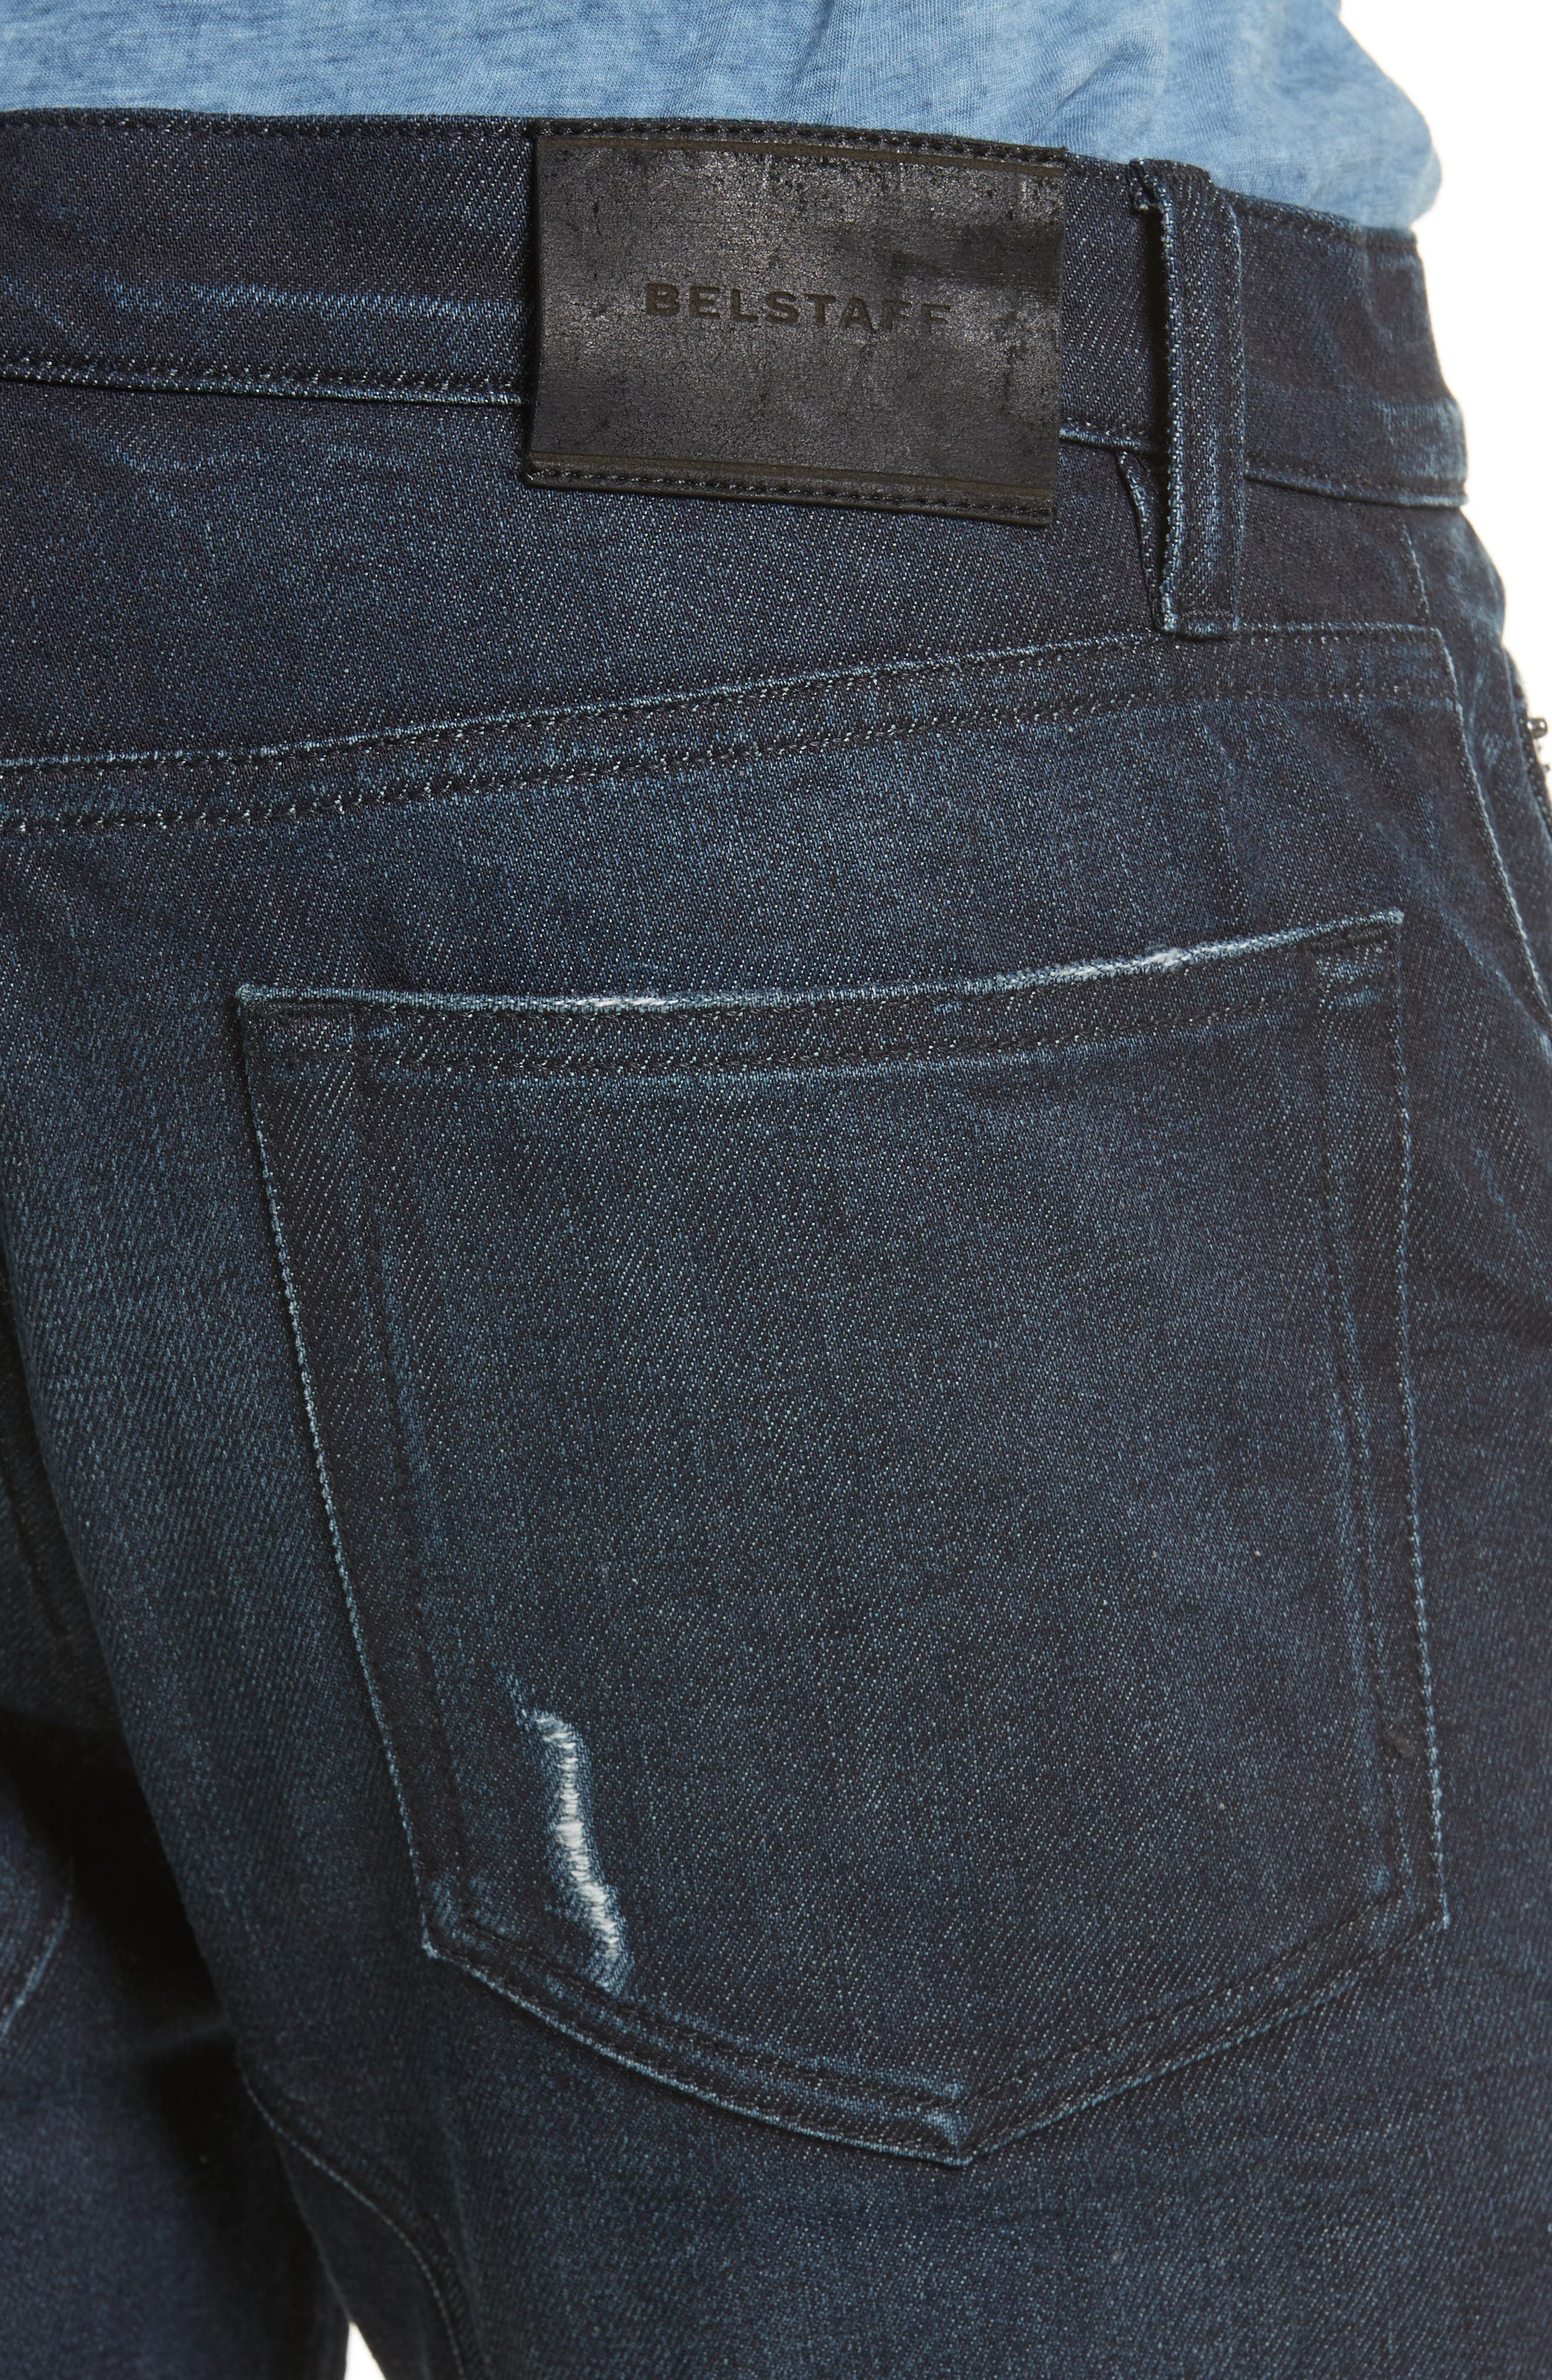 Eastham Washed Moto Jeans,                             Alternate thumbnail 5, color,                             Faded Indigo Blue